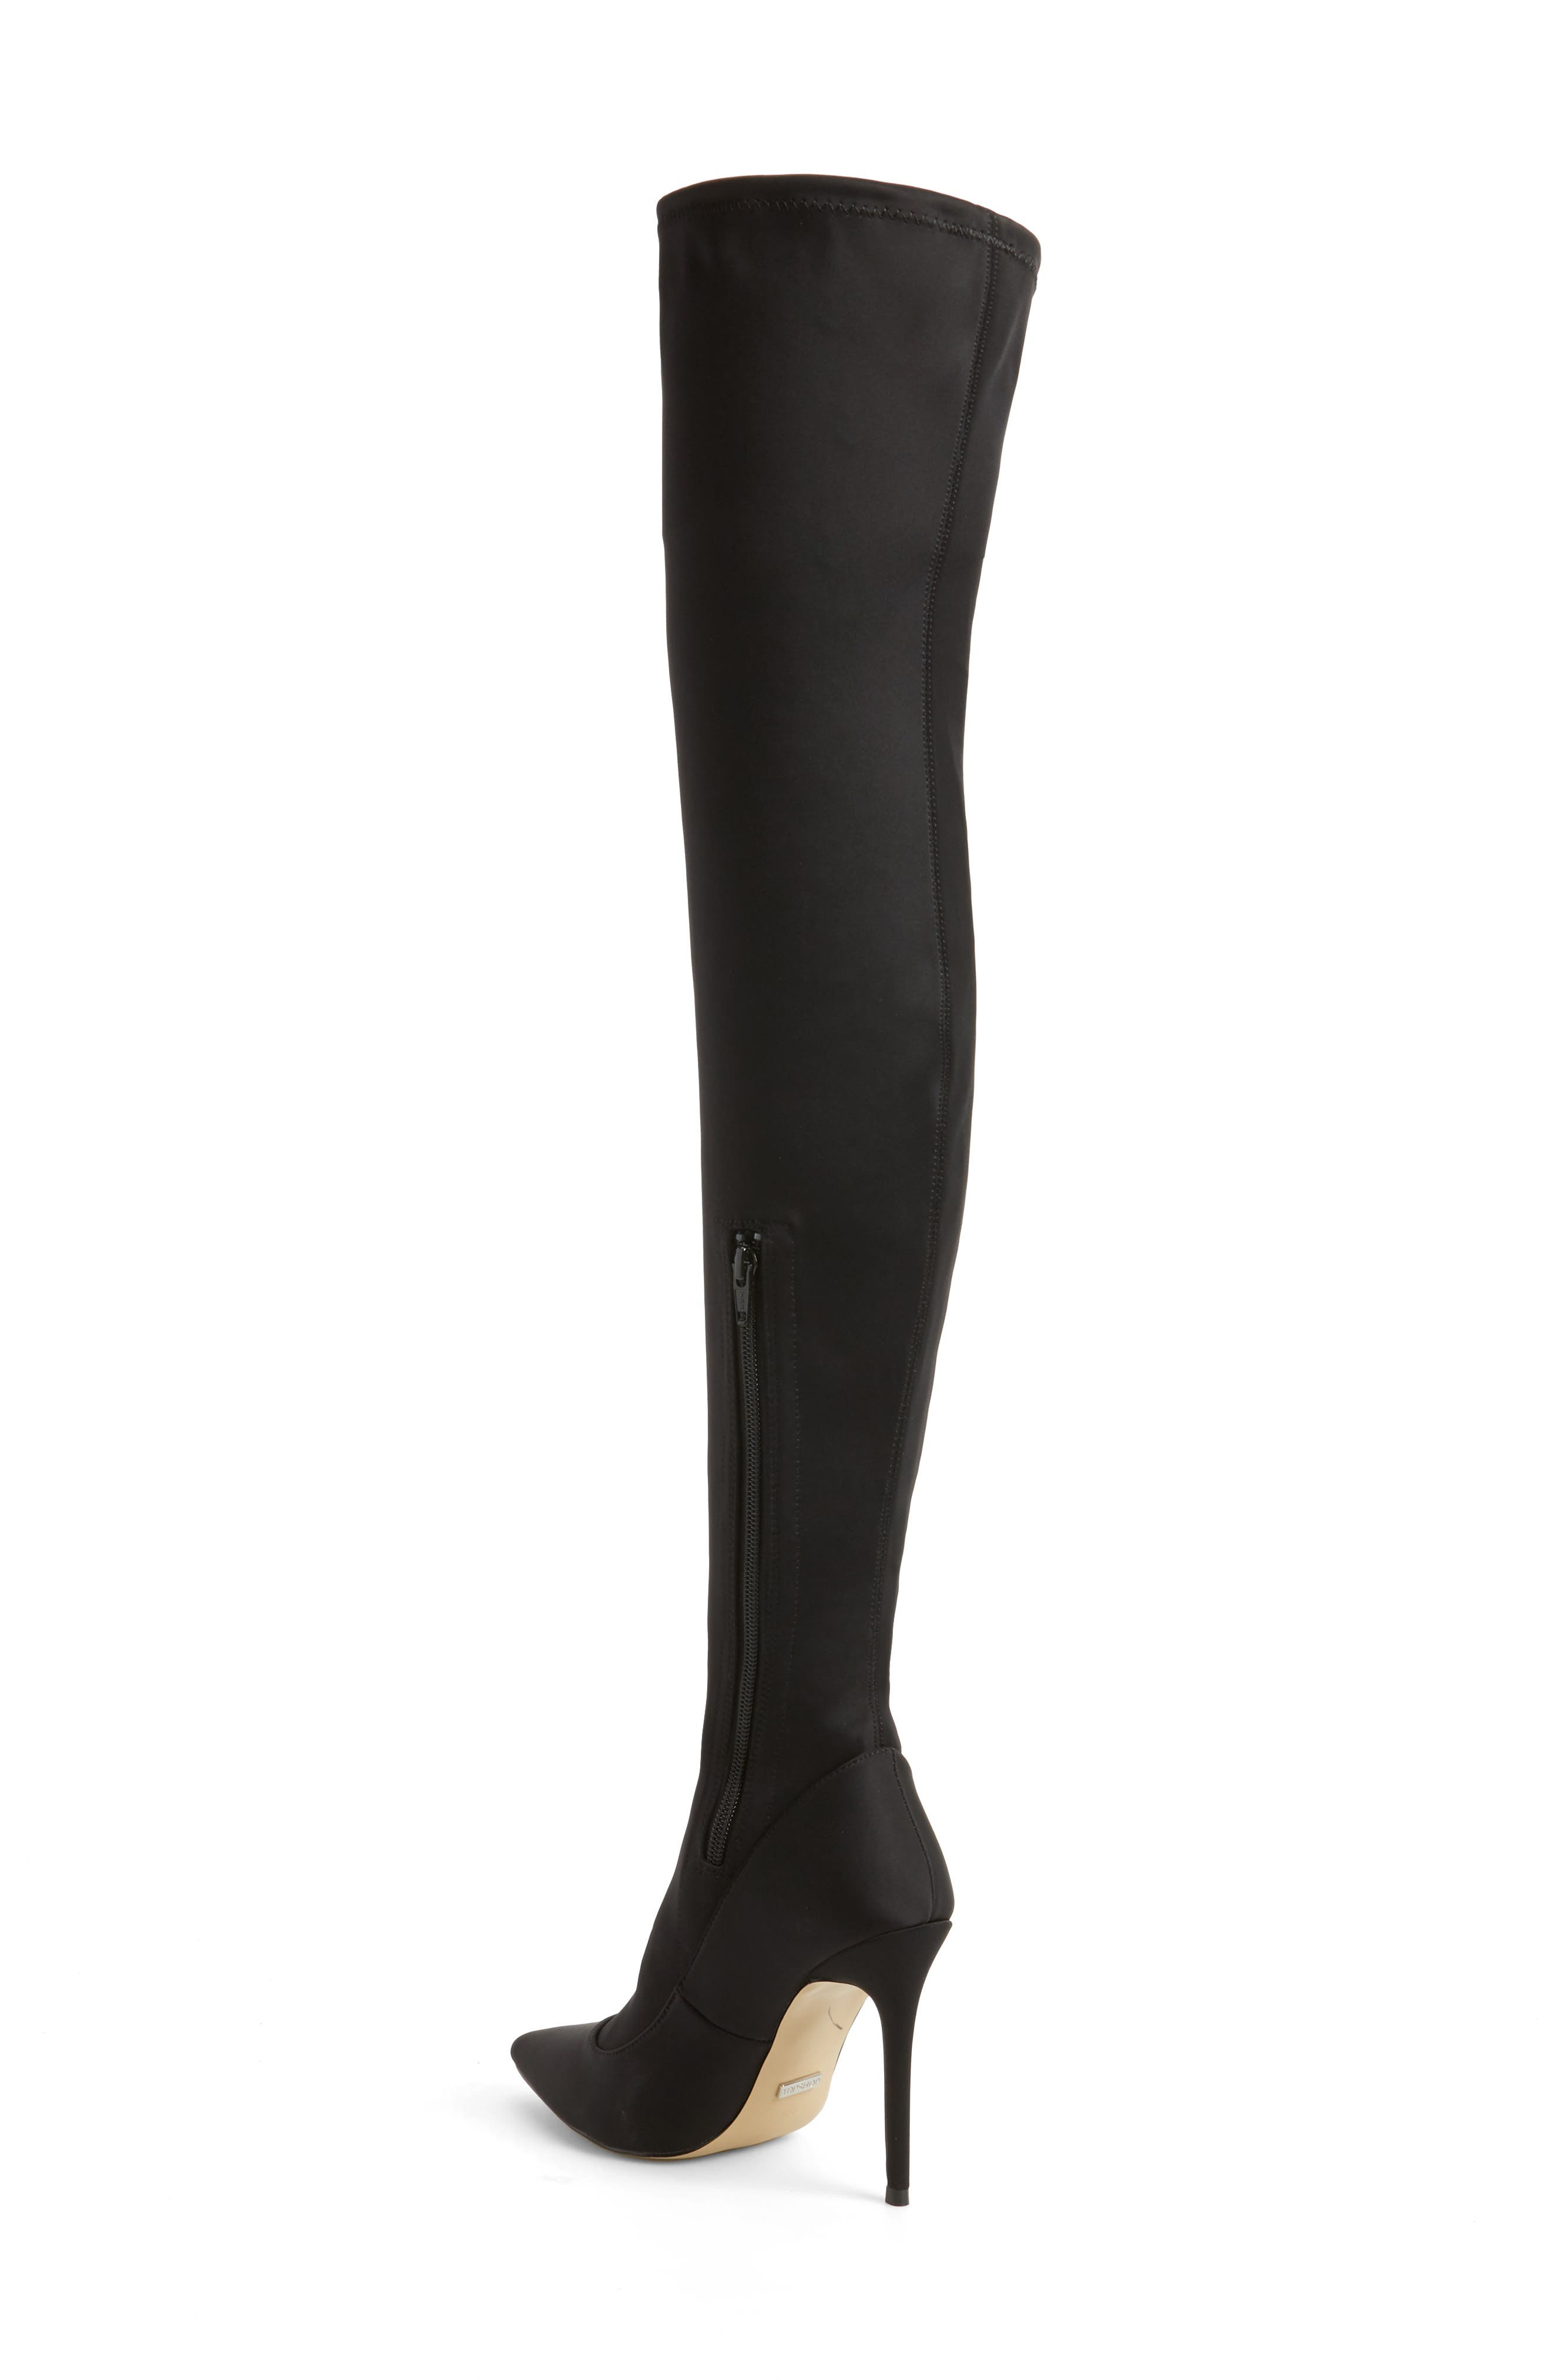 TOPSHOP,                             Bellini Stiletto Over the Knee Boot,                             Alternate thumbnail 2, color,                             001